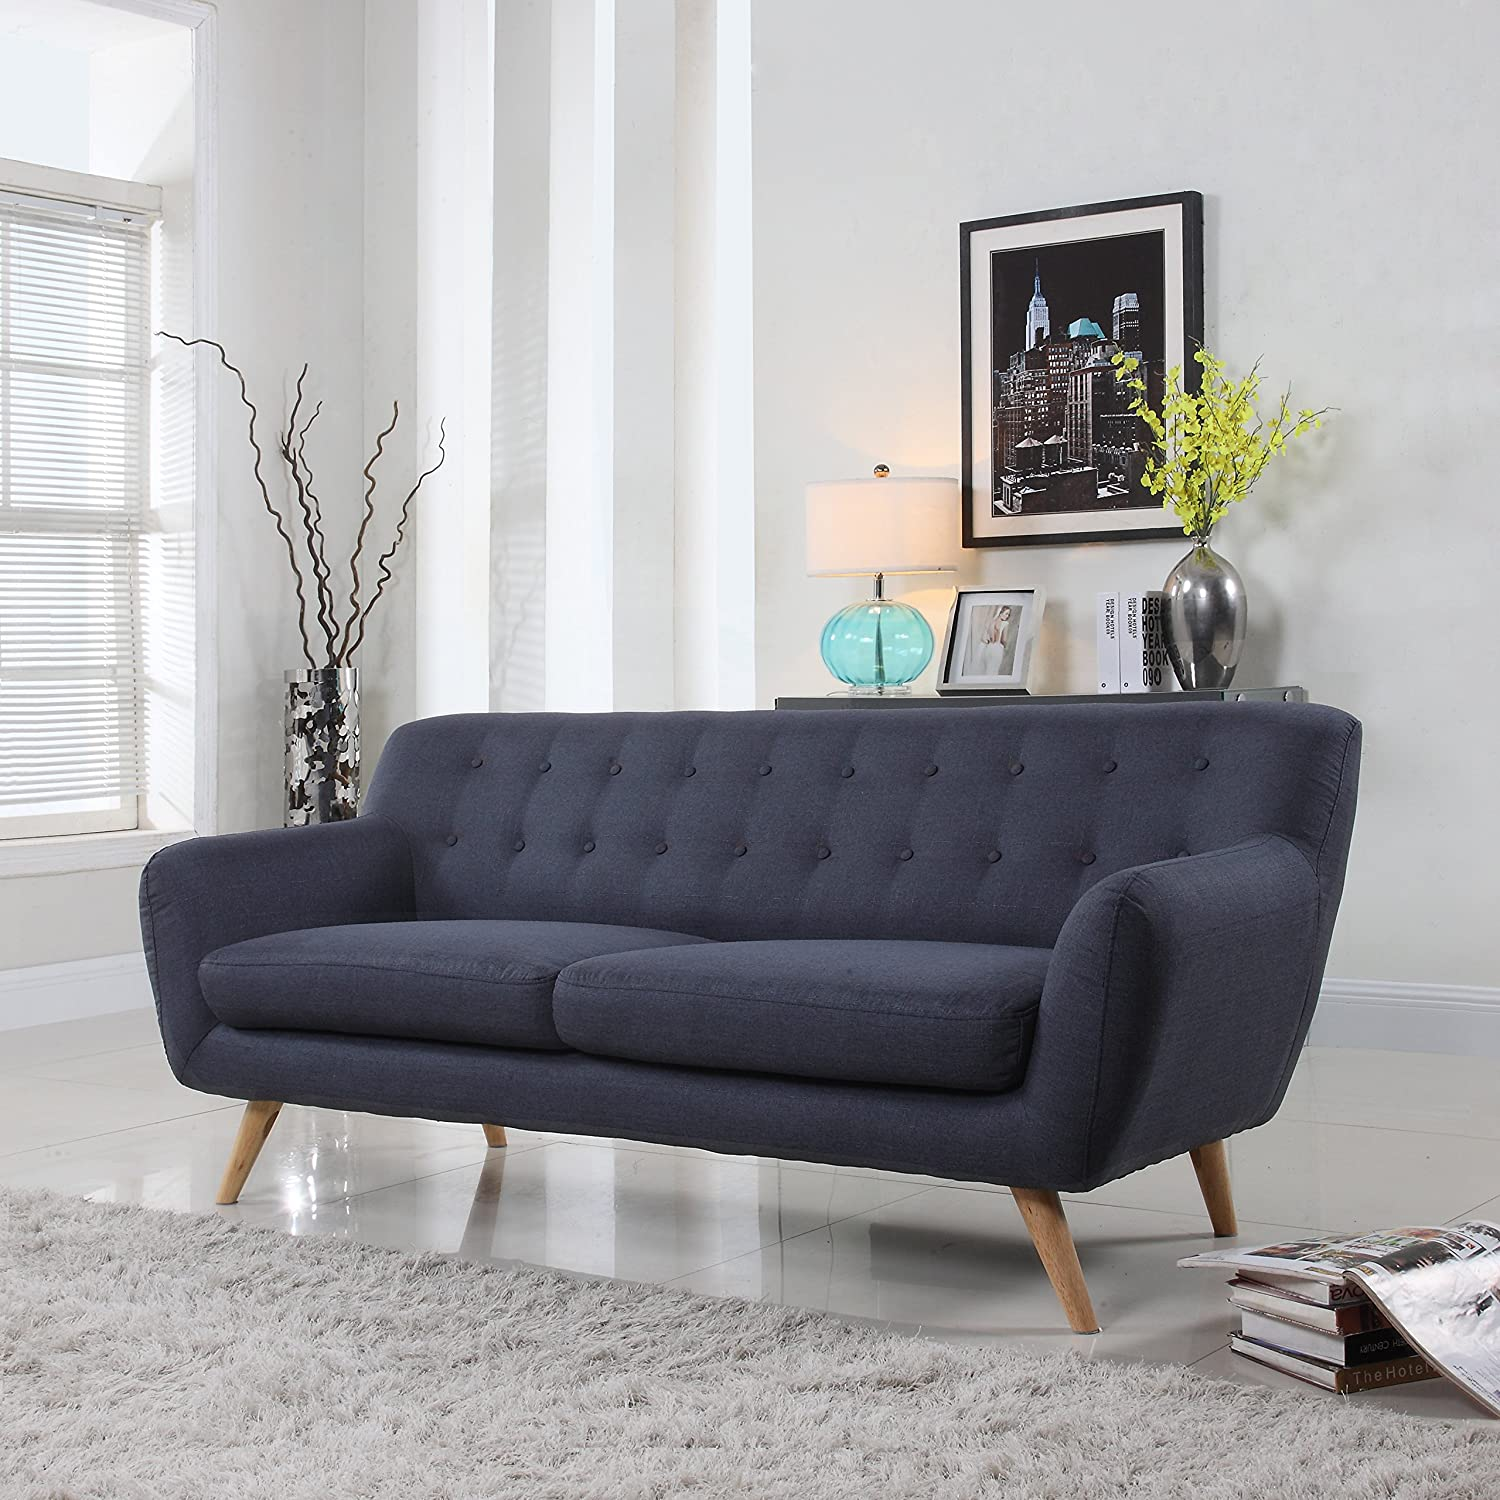 Amazon.com: Modern Mid Century Sofa/Loveseat   Divano Roma: Kitchen U0026 Dining